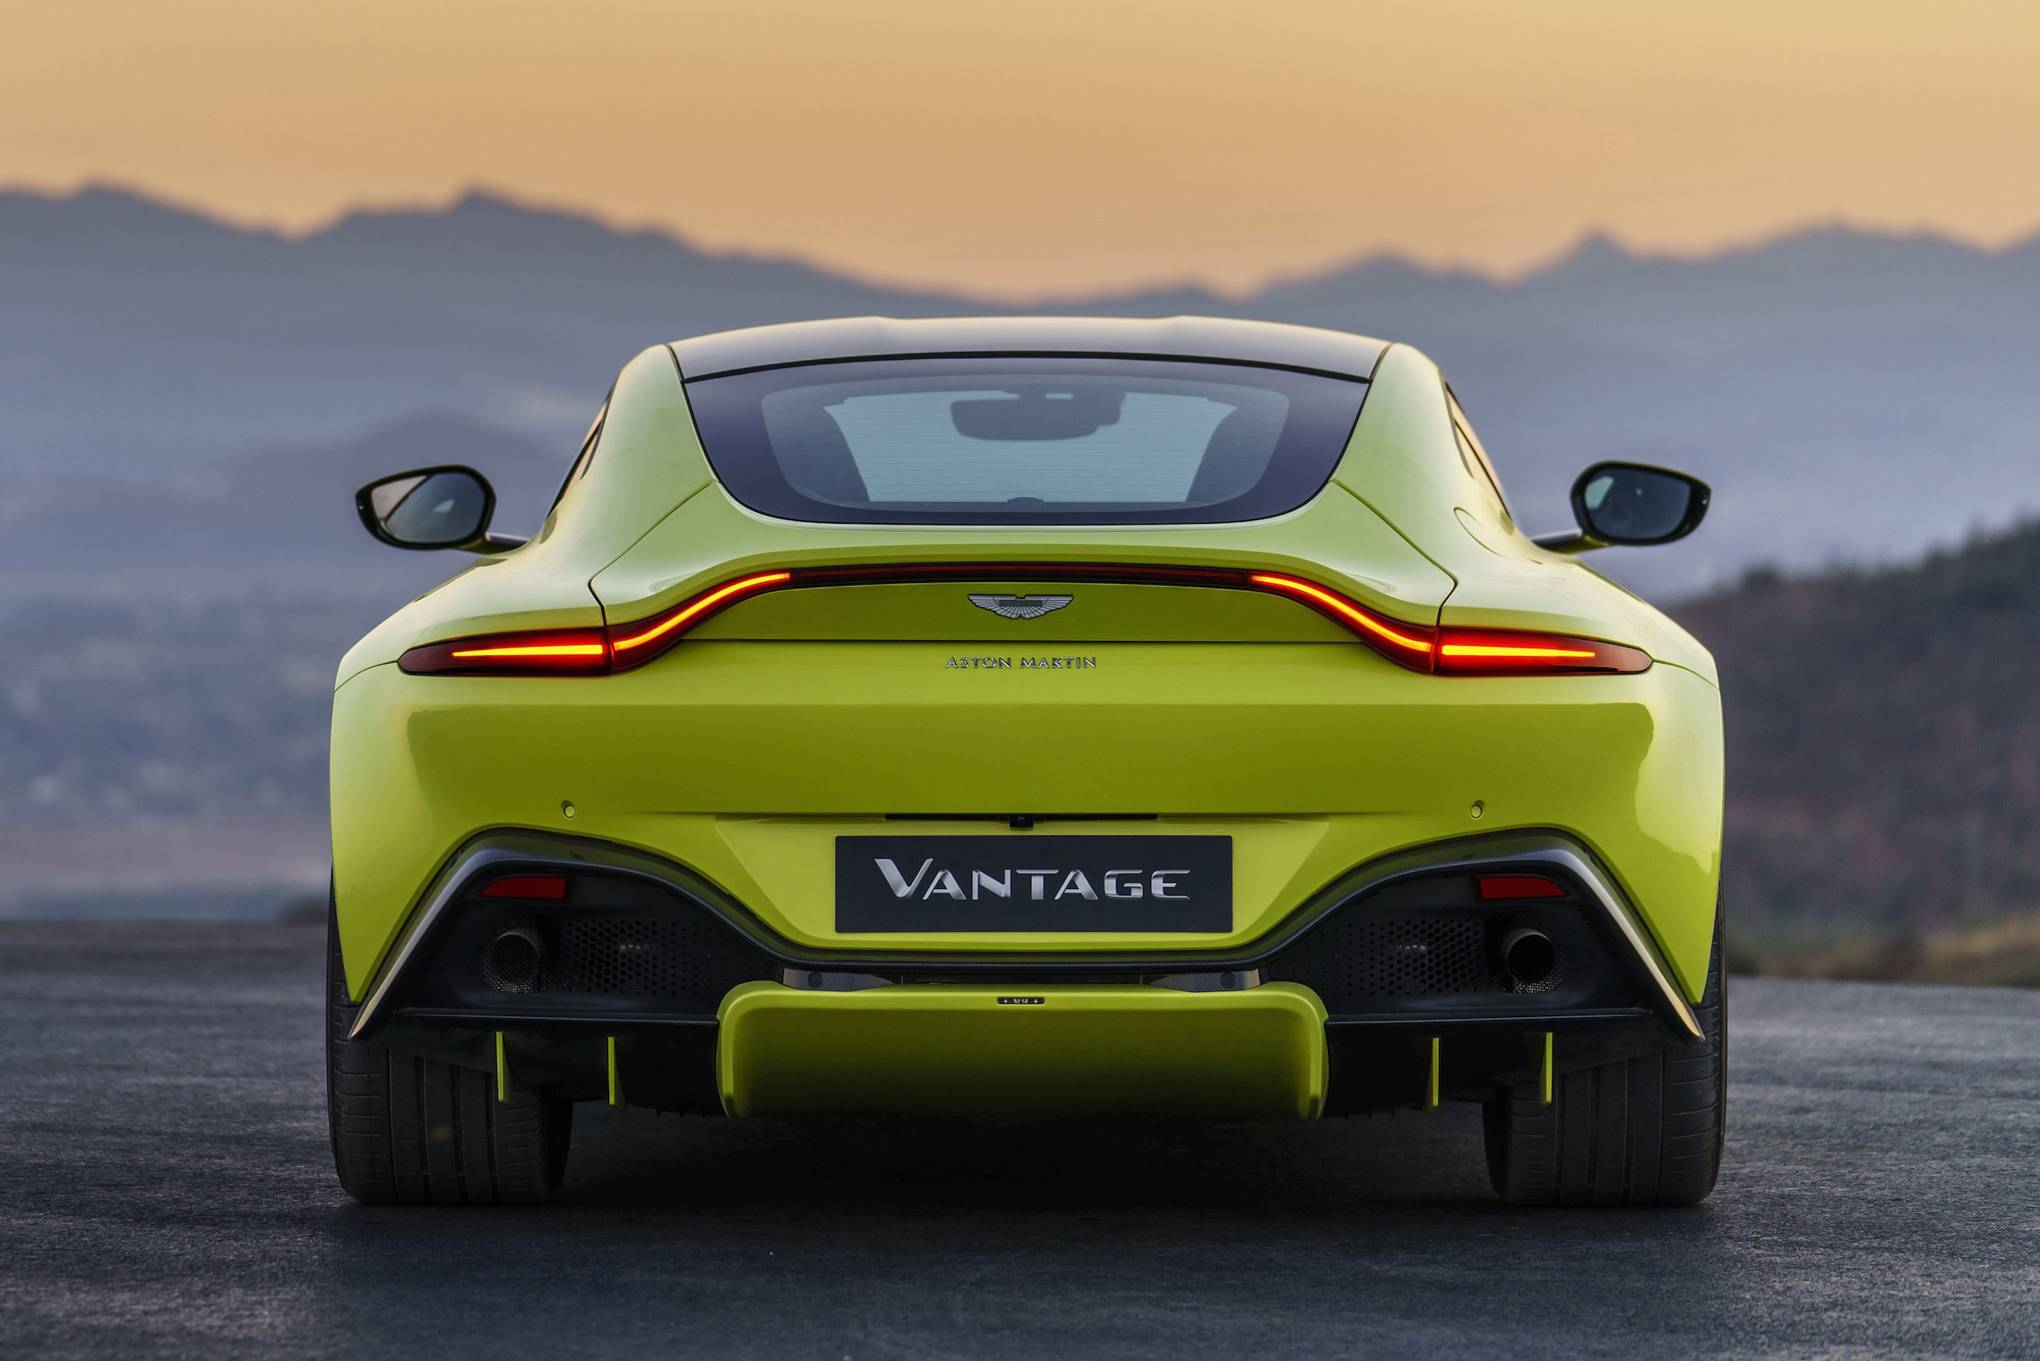 Aston Martin Vantage Entrylevel Luxury With The Looks WIRED UK - Aston martin pics